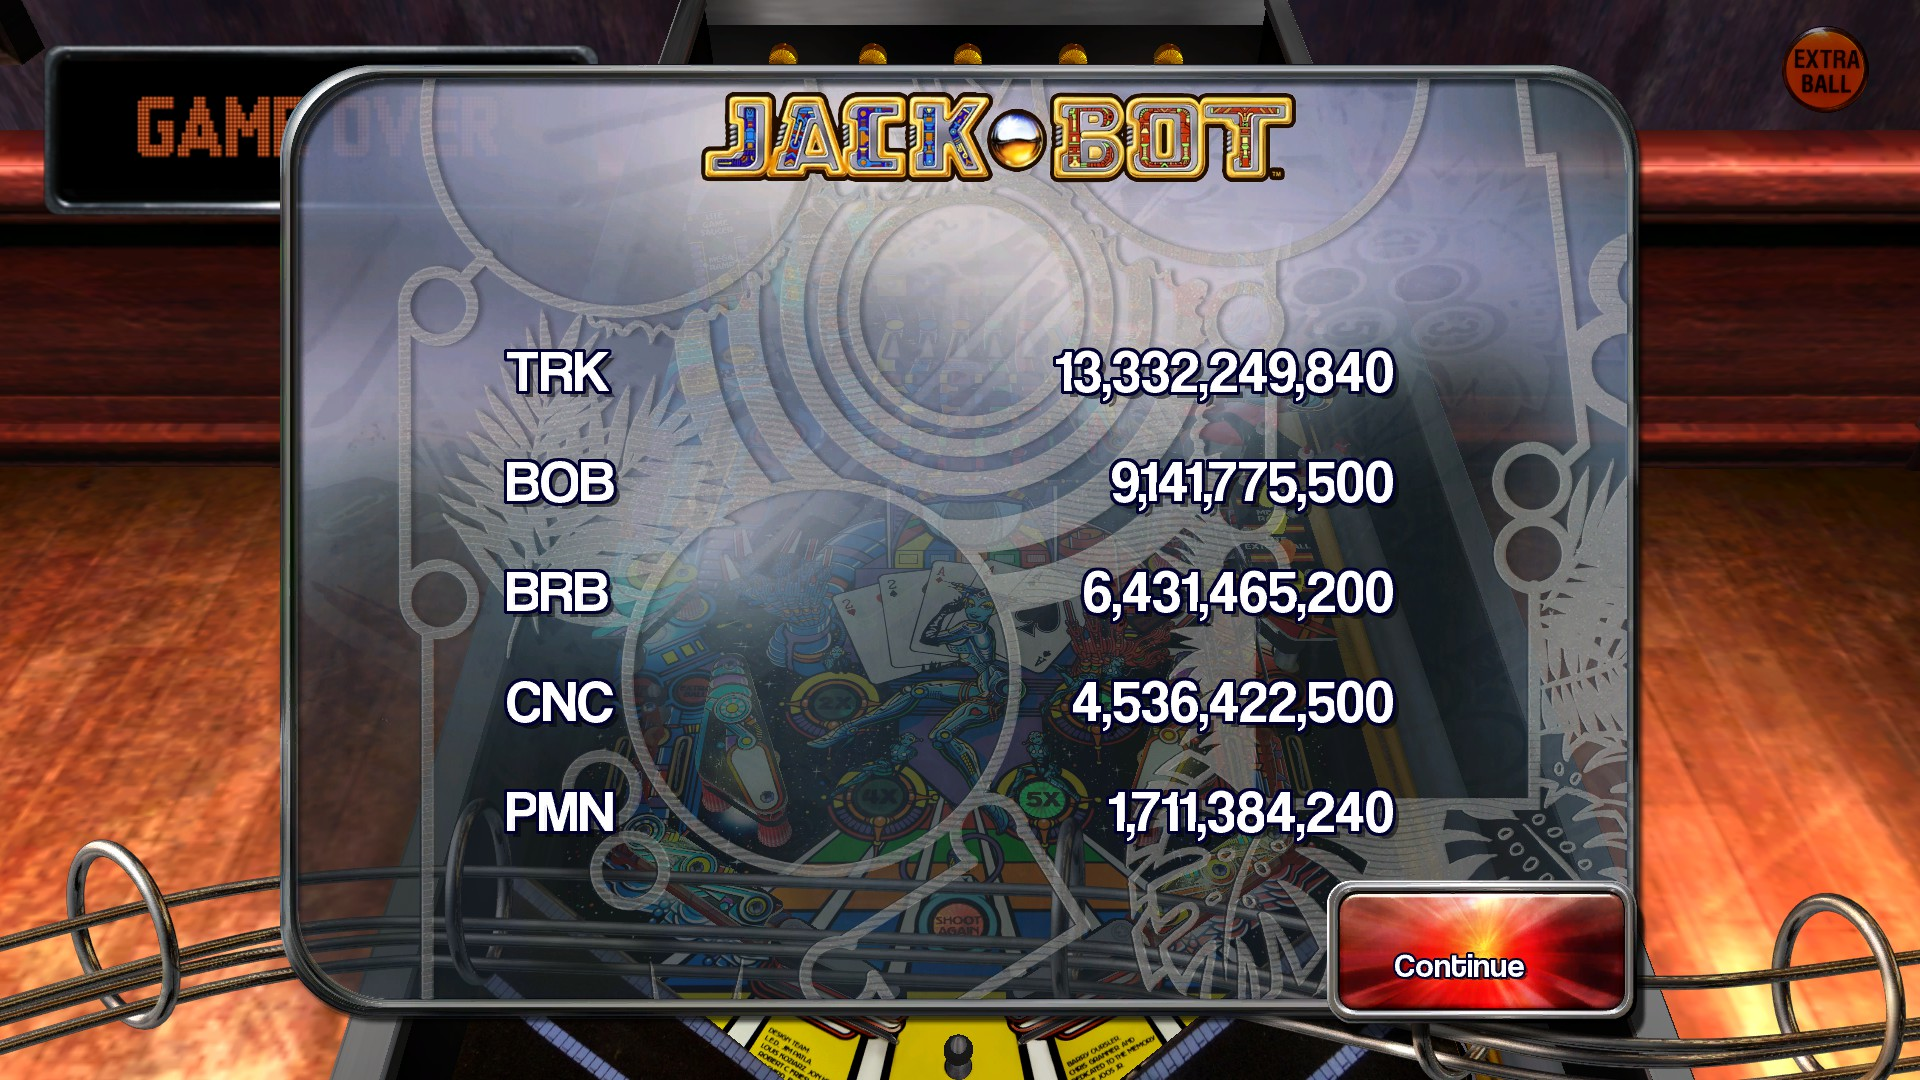 TheTrickster: Pinball Arcade: Jack*Bot (PC) 13,332,249,840 points on 2015-11-22 06:49:20